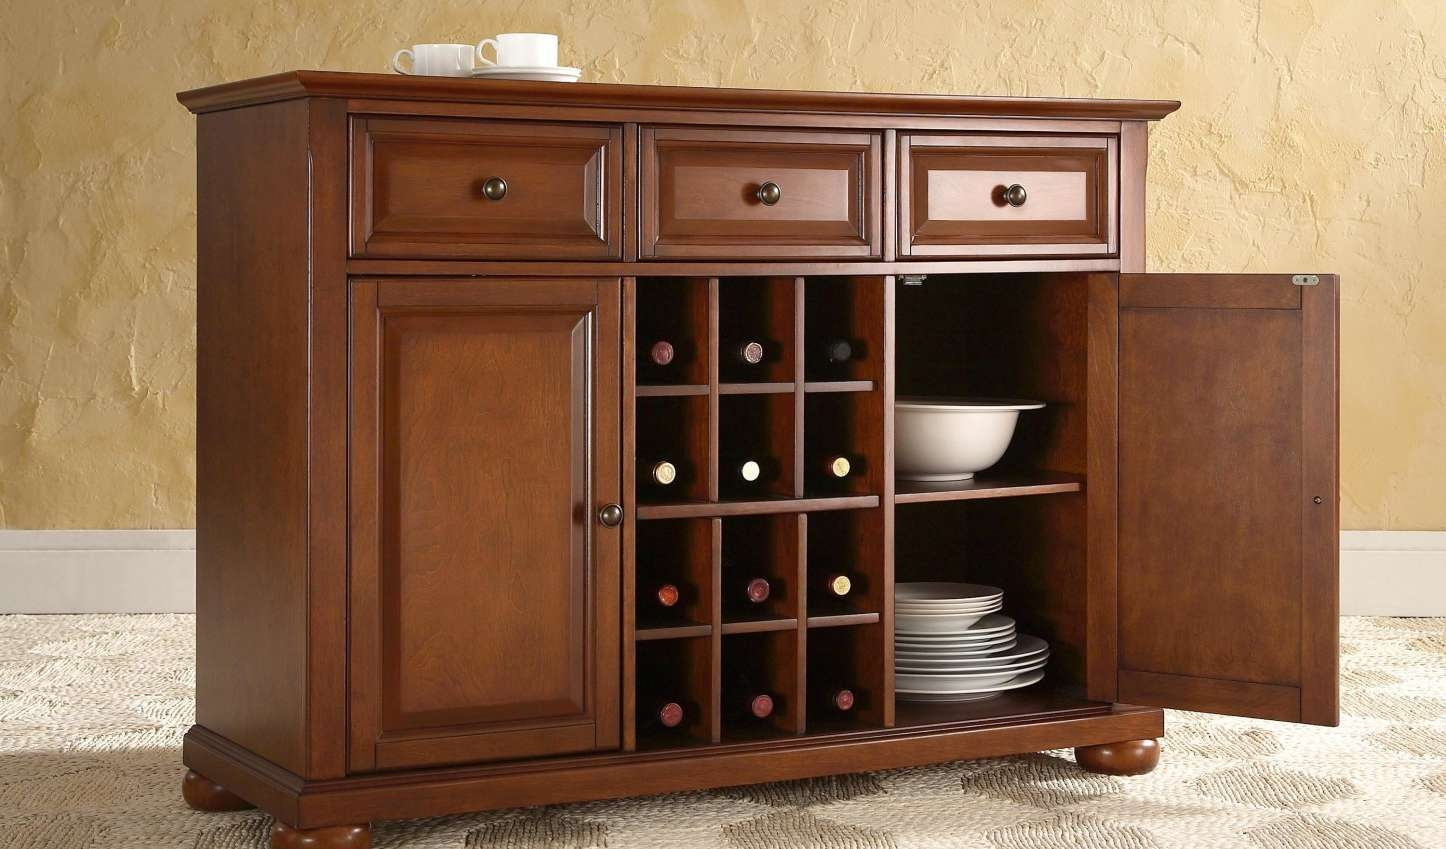 Sideboard : Traditional Sideboards And Buffets Gripping Small Oak Regarding Traditional Sideboards (View 7 of 20)